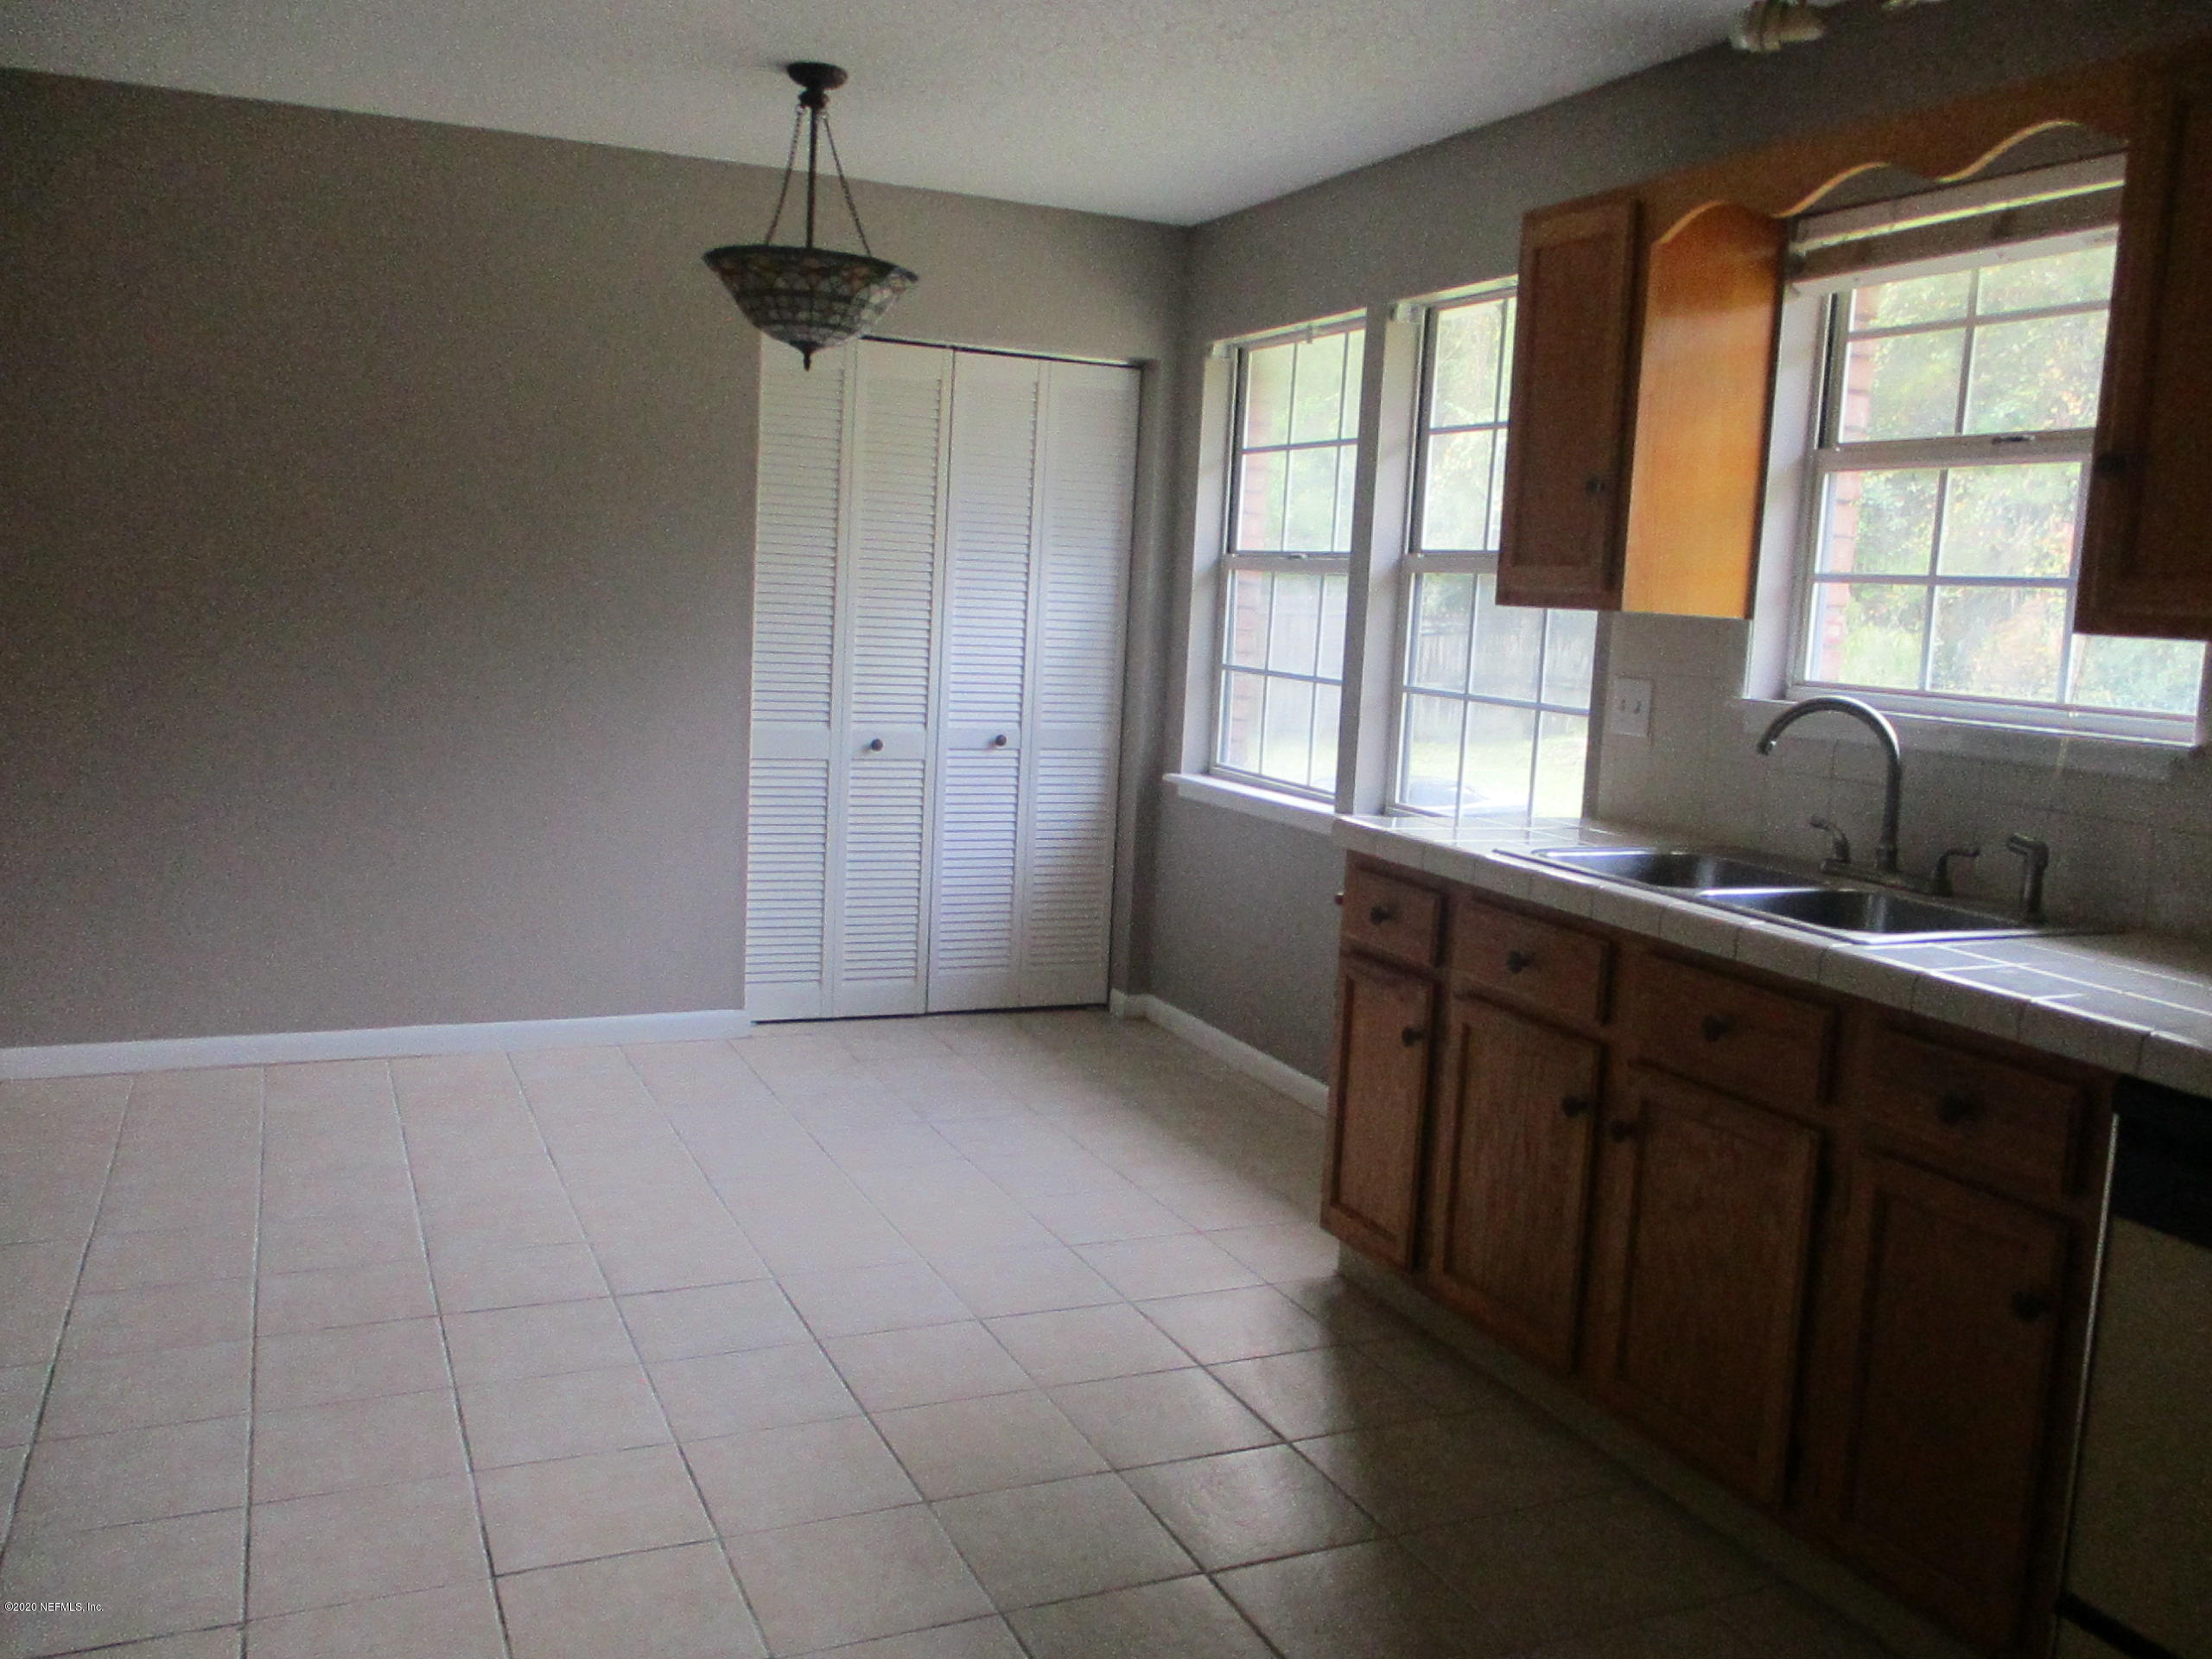 710 7TH, MACCLENNY, FLORIDA 32063, 3 Bedrooms Bedrooms, ,2 BathroomsBathrooms,Residential,For sale,7TH,1082550